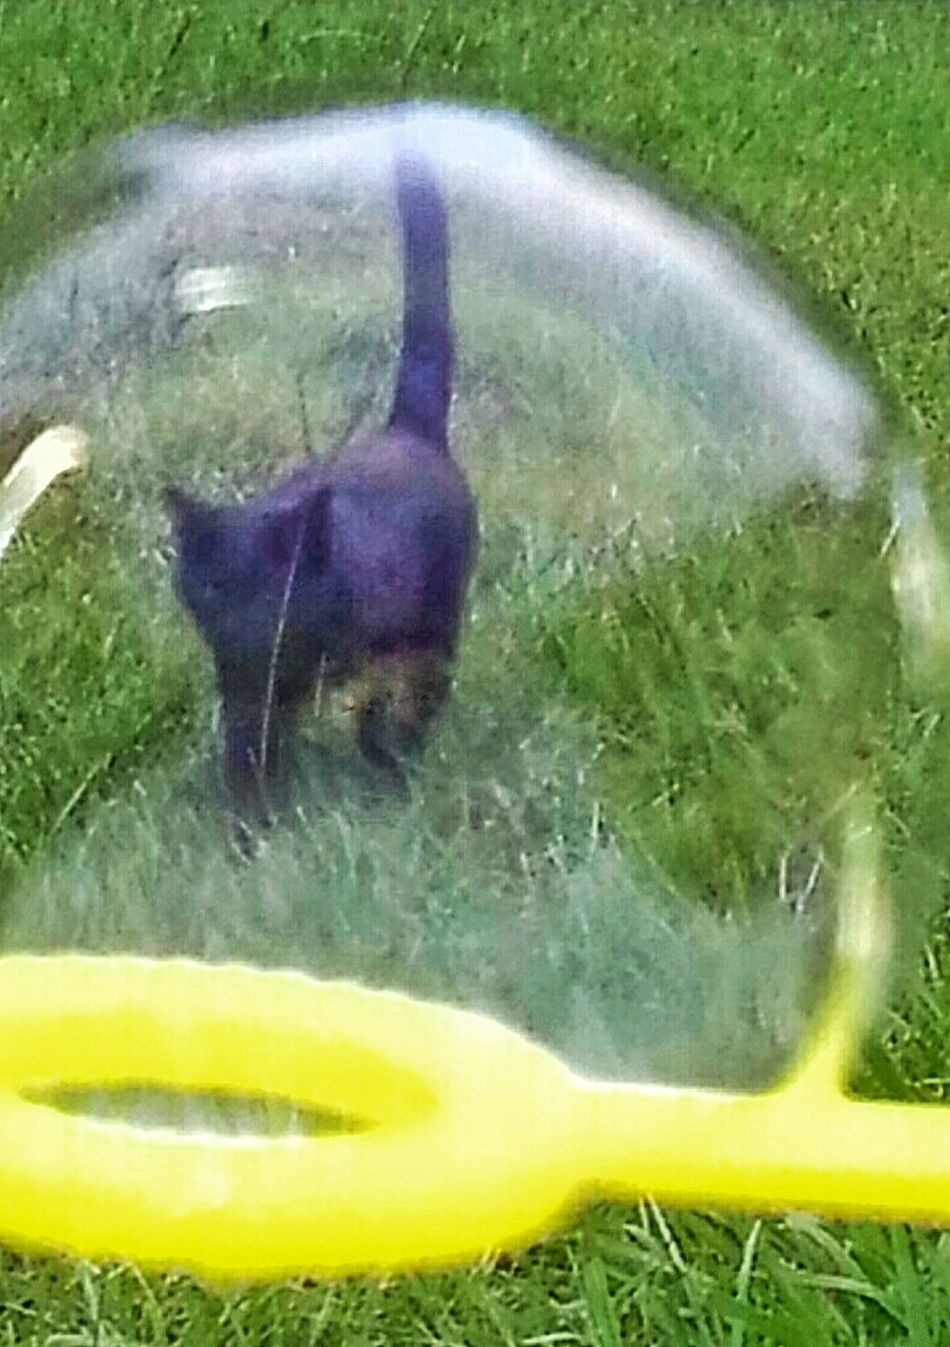 Cat In A Bubble Bubble Blowing Bubbles Cats Black Cat Cat Photography Cats Of EyeEm Outdoor Photography Animal Lovers Cat Lovers Shapes And Forms Round Circle Green Grass Playing Outside Cats Natural Light Photo Natural Light Portrait